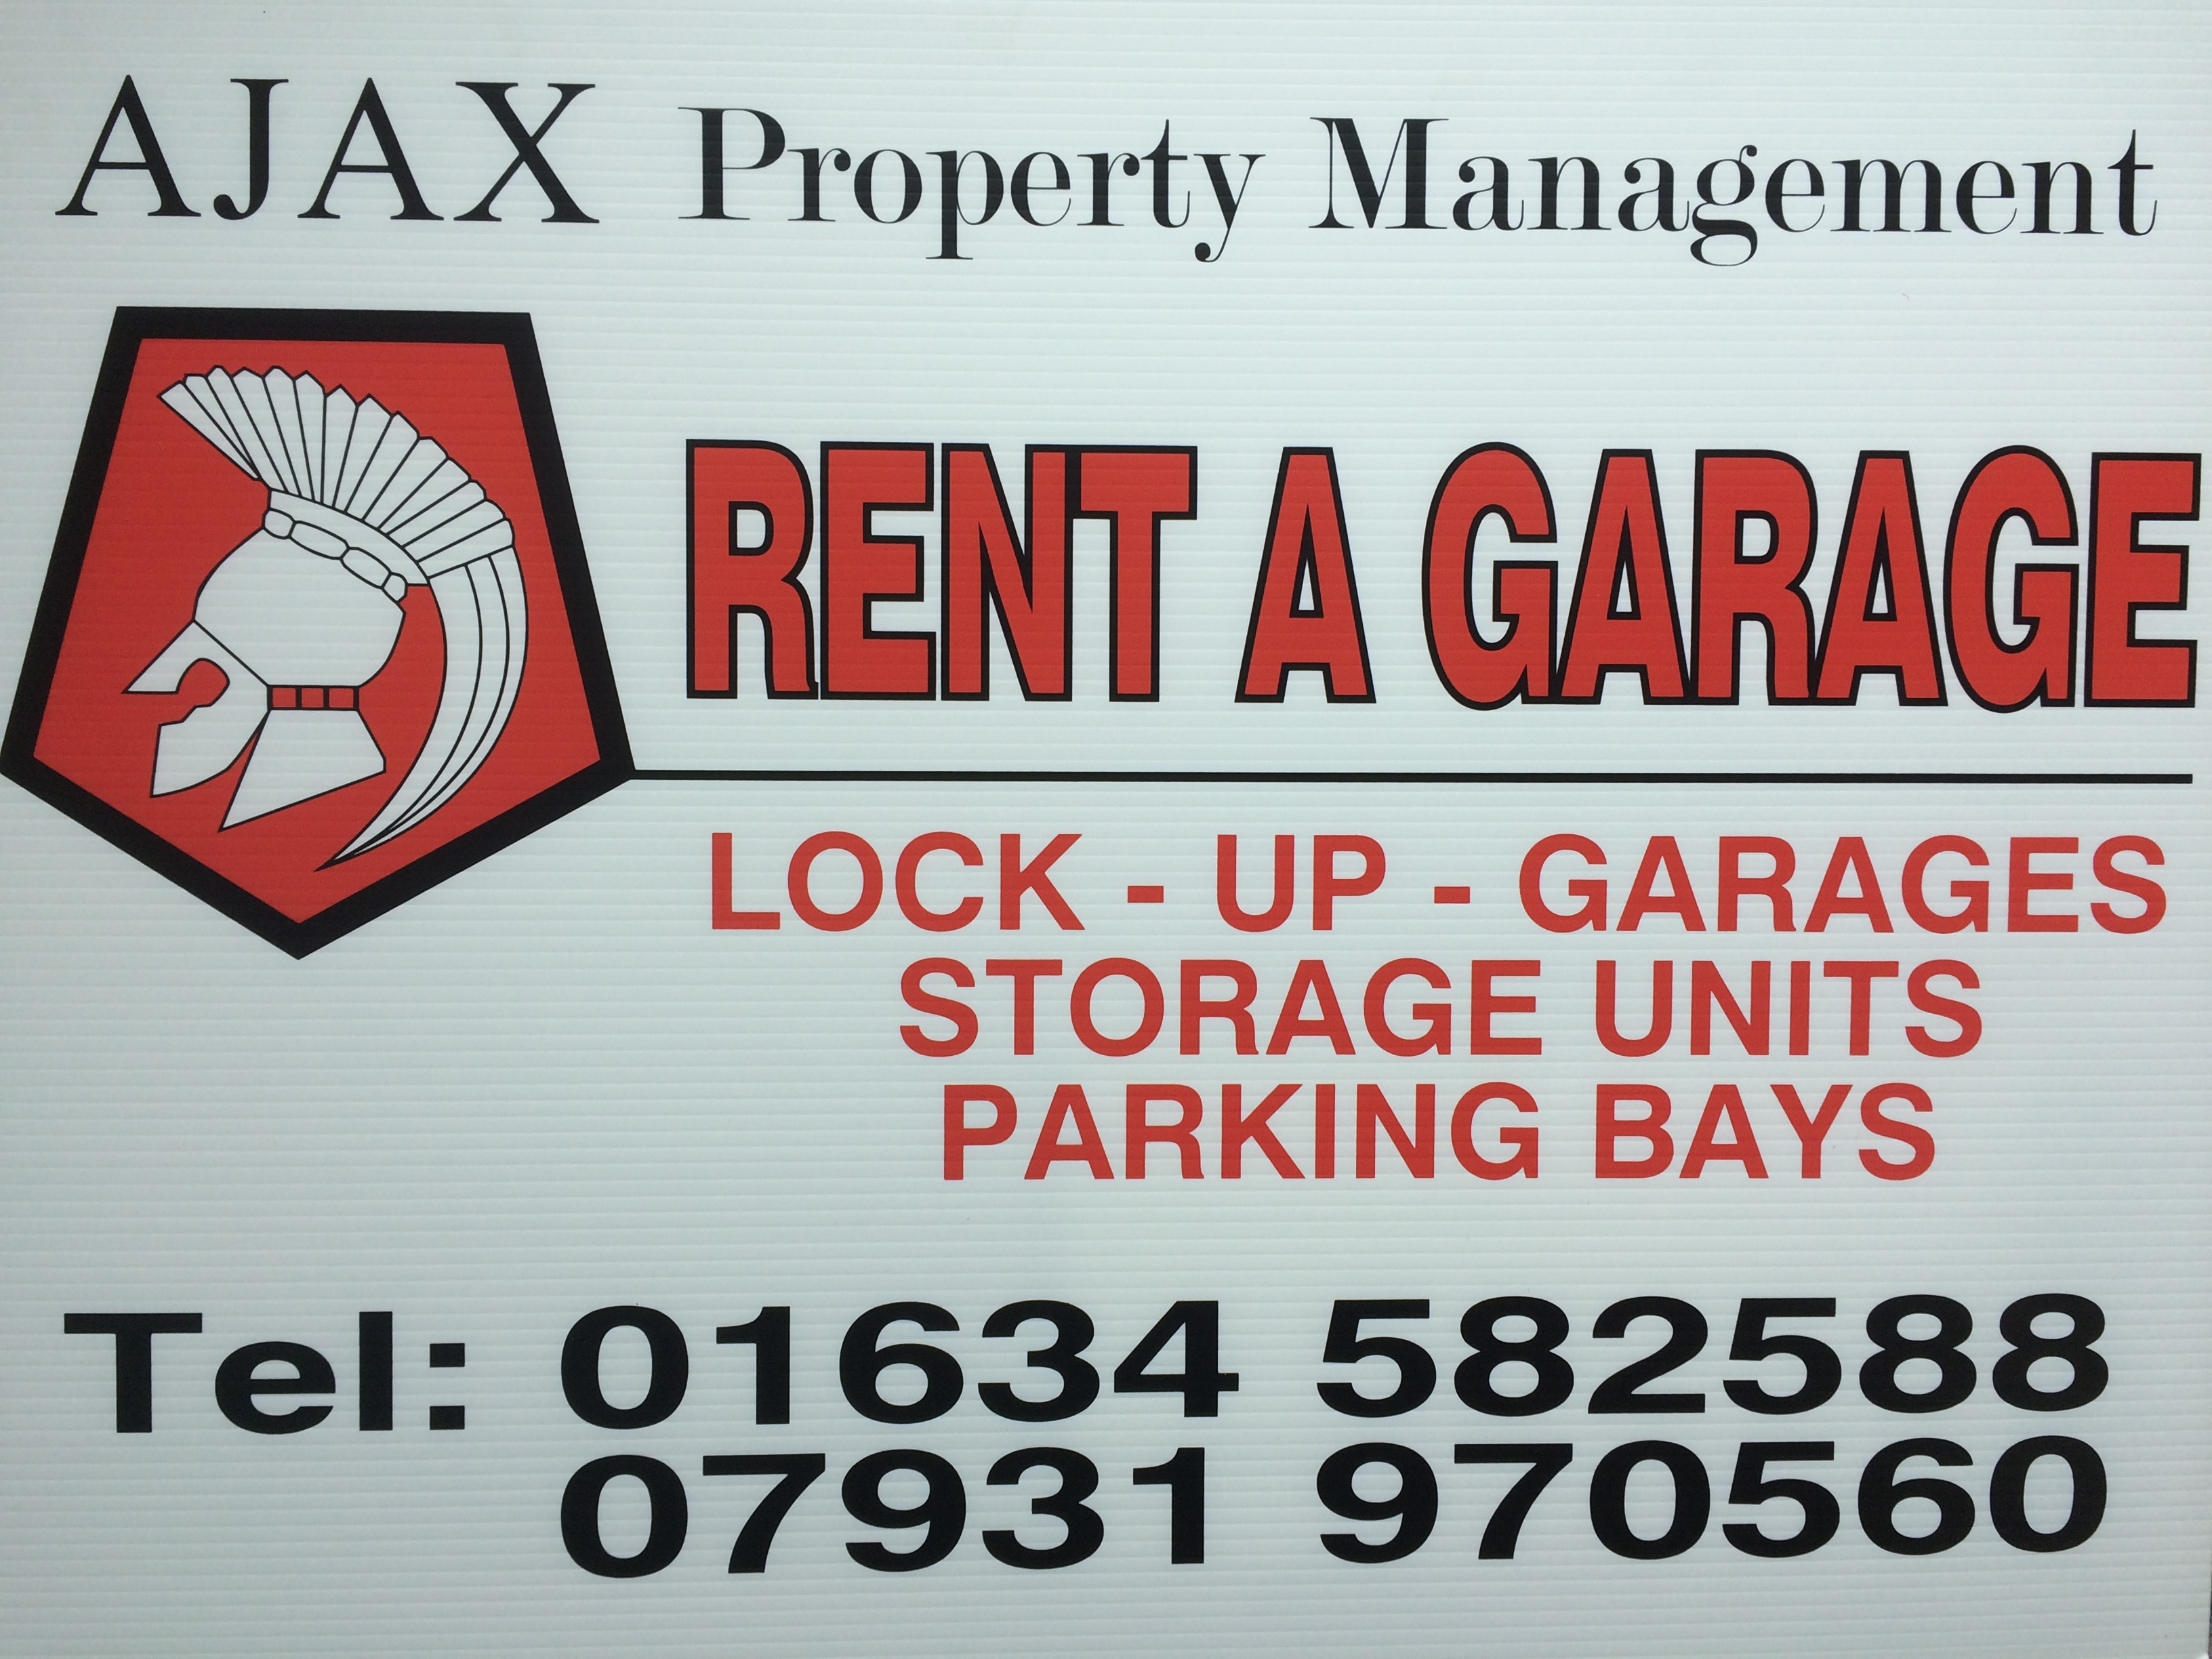 AJAX Property Management,lock up garage rentals, storage units, parking bays in  Medway, Chatham, Gillingham, Rochester, Rainham, Ashford, Tonbridge, Ramsgate, Kent  & Sussex